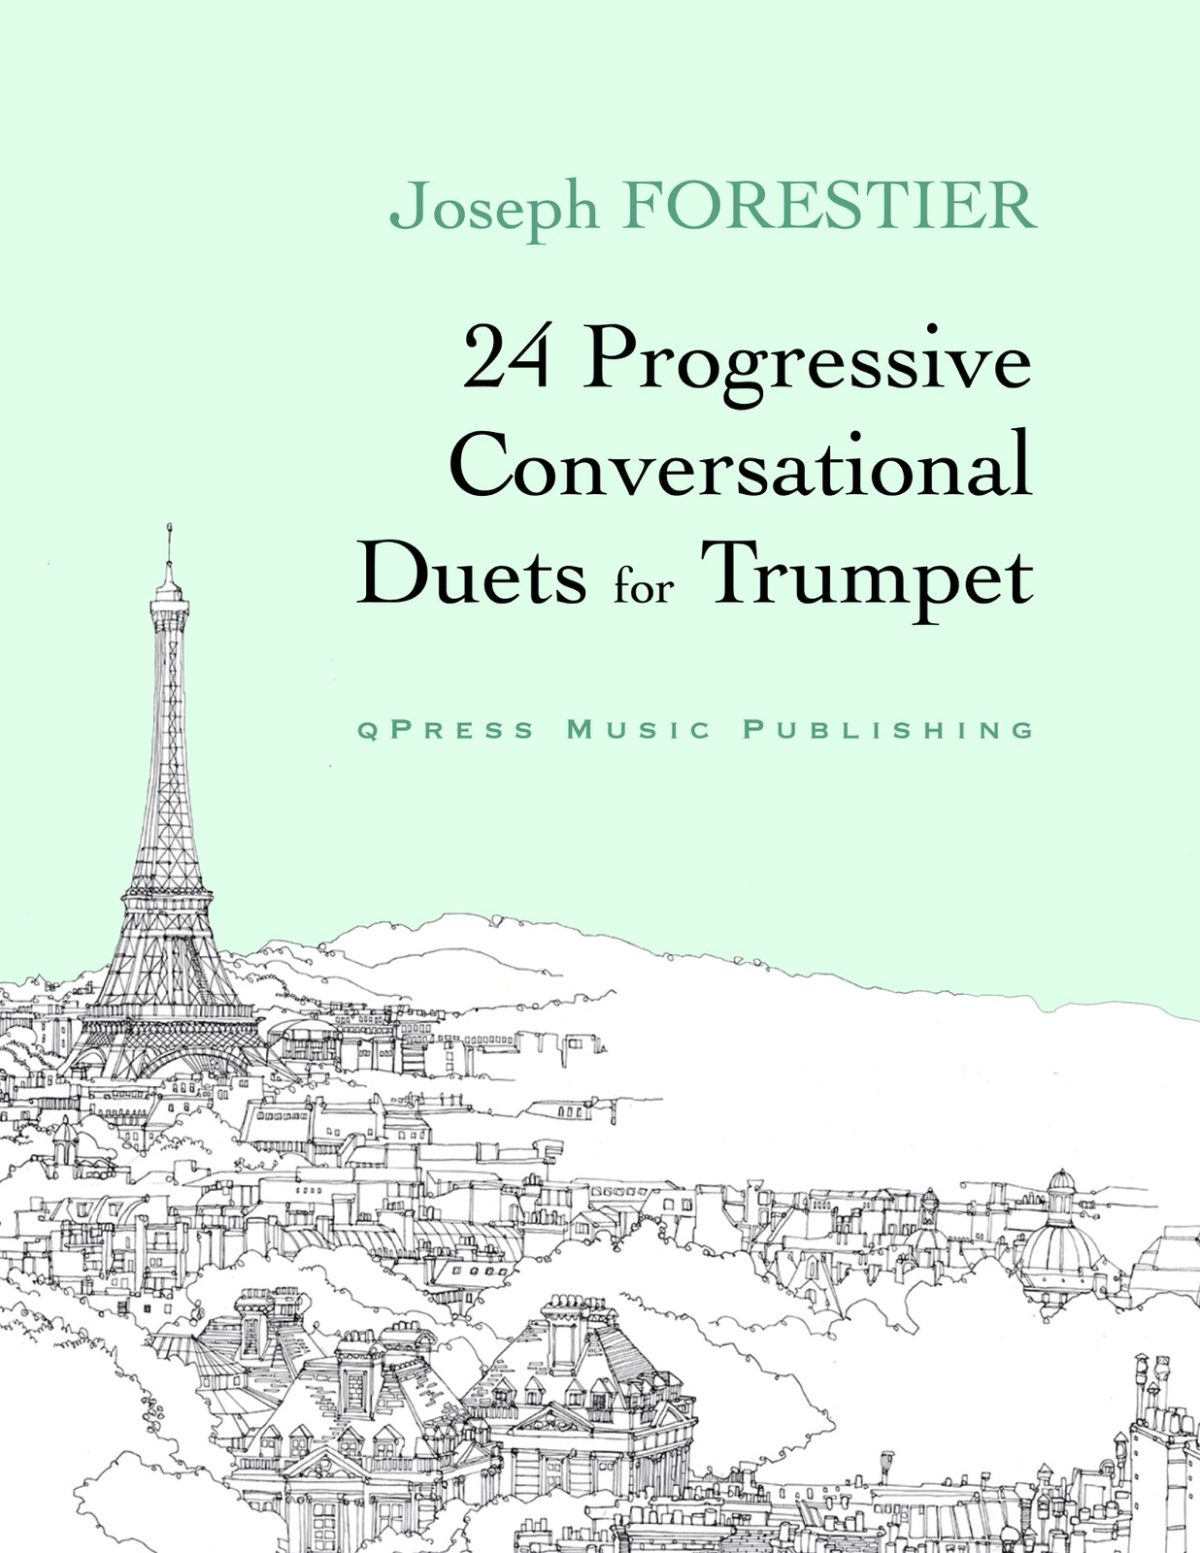 Forestier, 24 Progressive Conversational Duets for Trumpet-p01